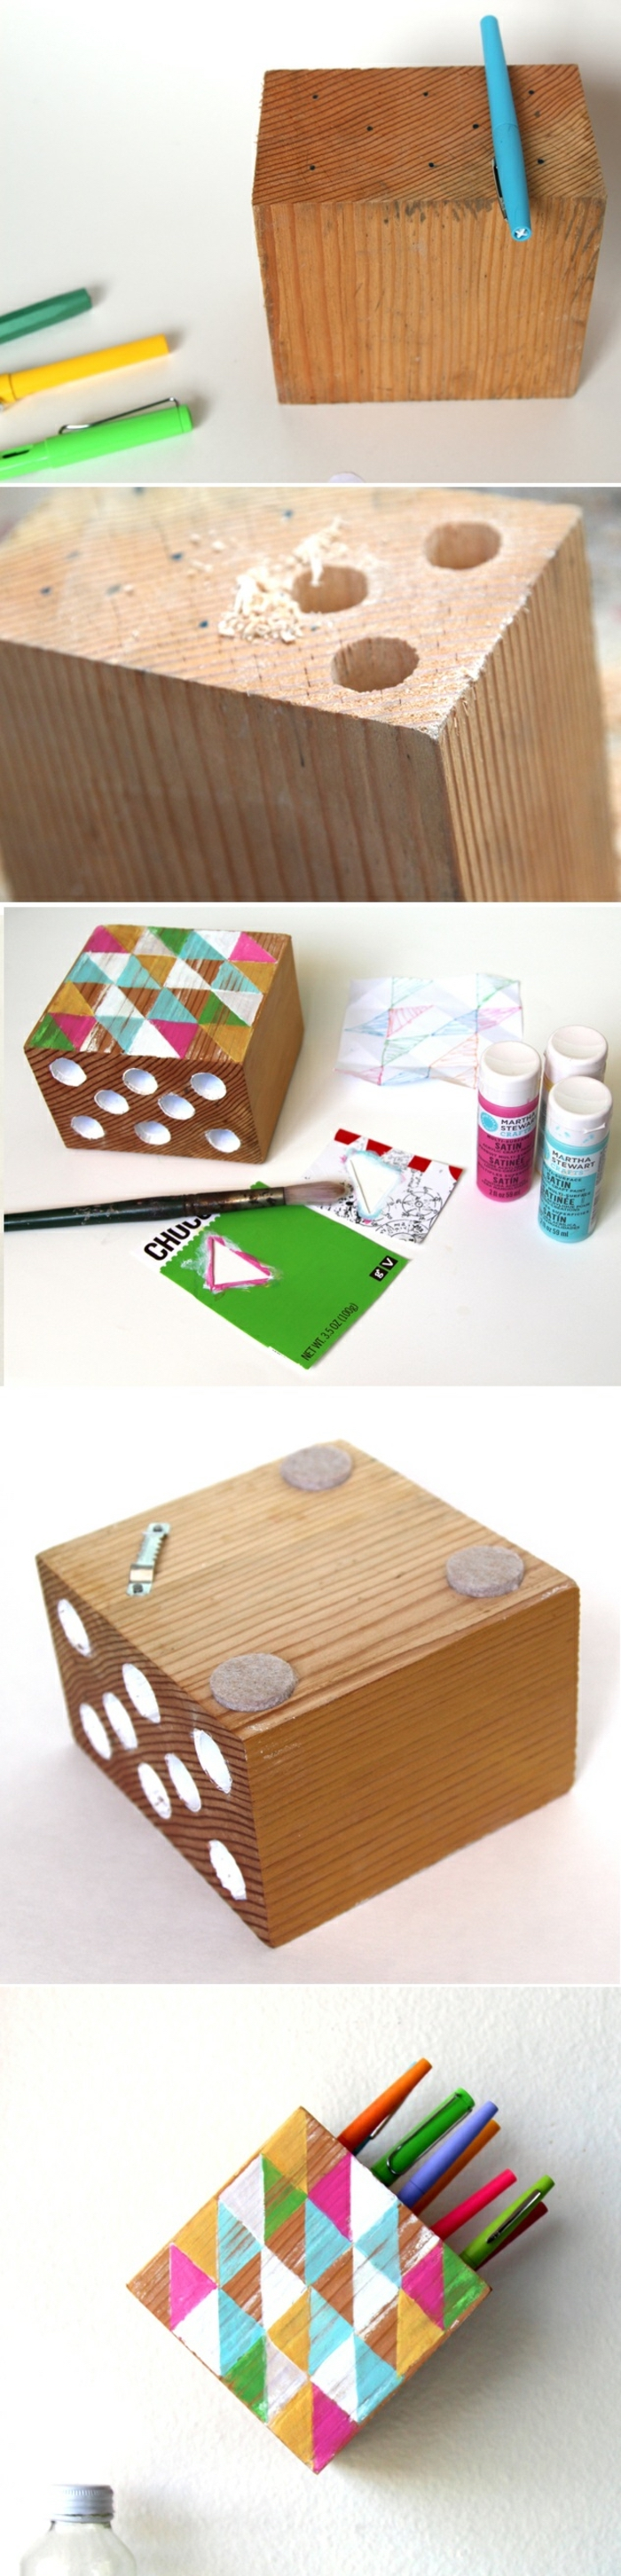 step by step, crafts for adults, diy tutorial, colourful wooden box, pencil holder